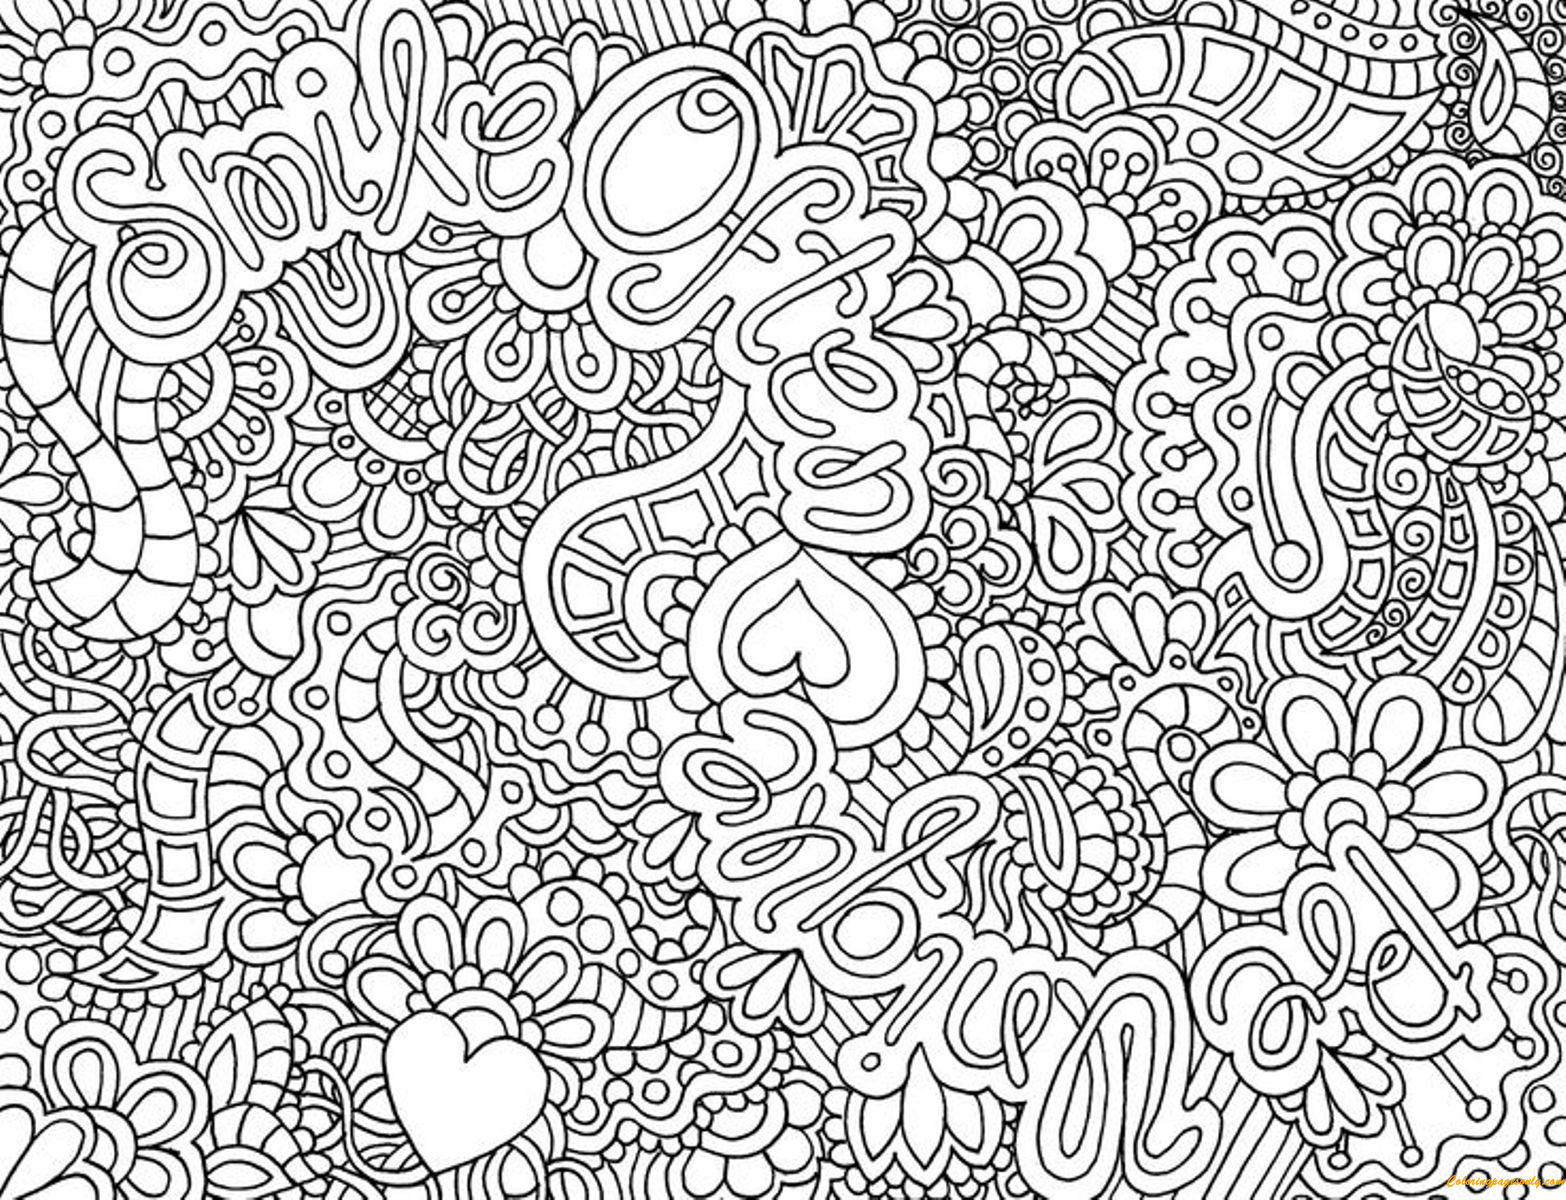 Free coloring pages complex - Complex Pattern Coloring Page